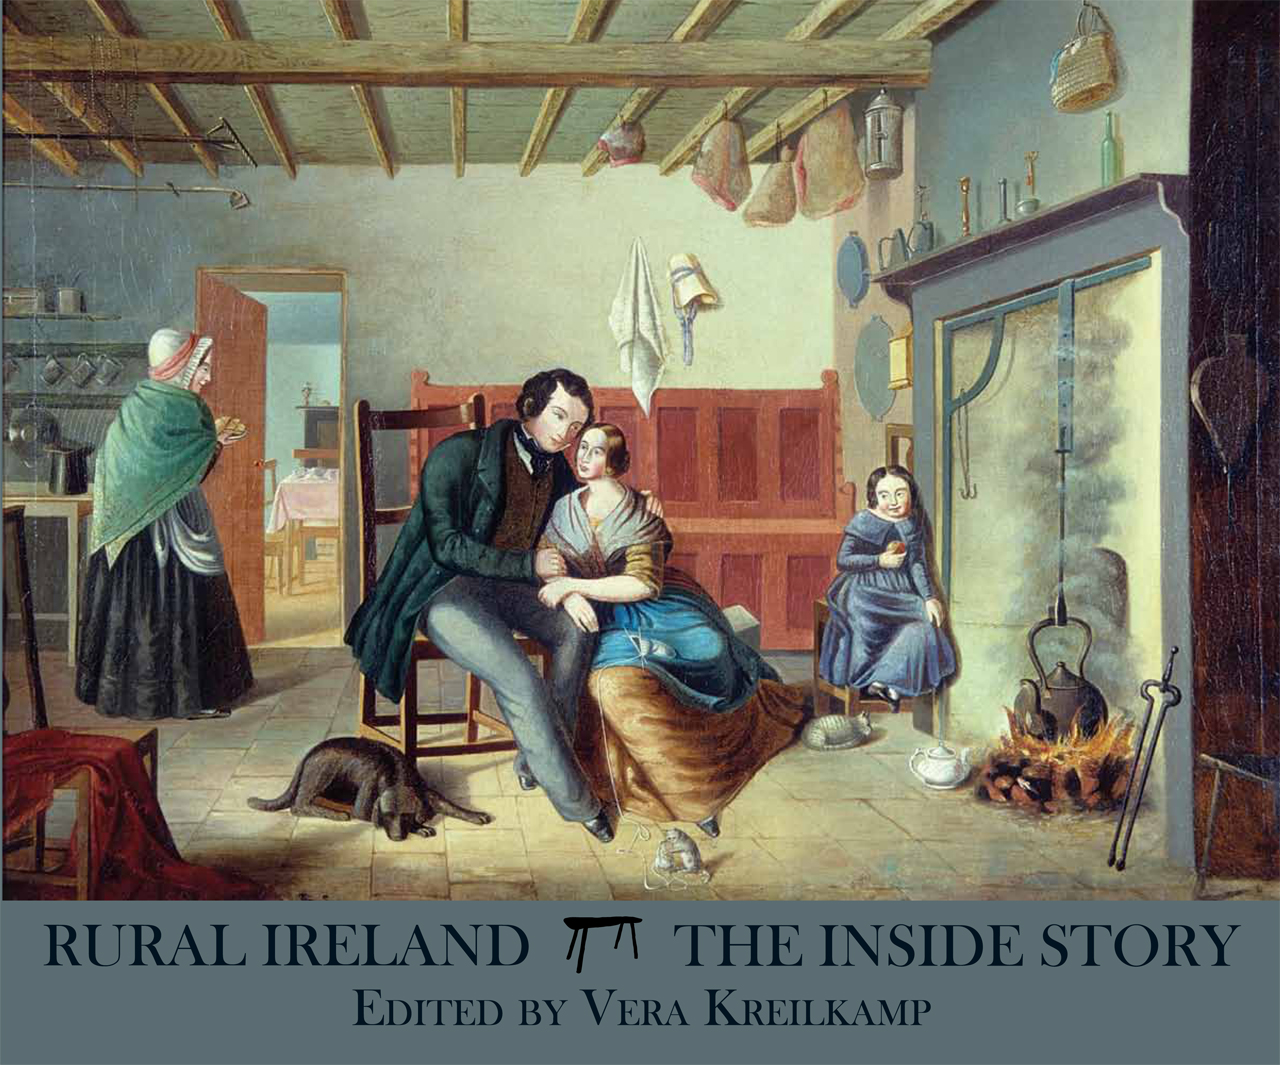 Rural Ireland: The Inside Story